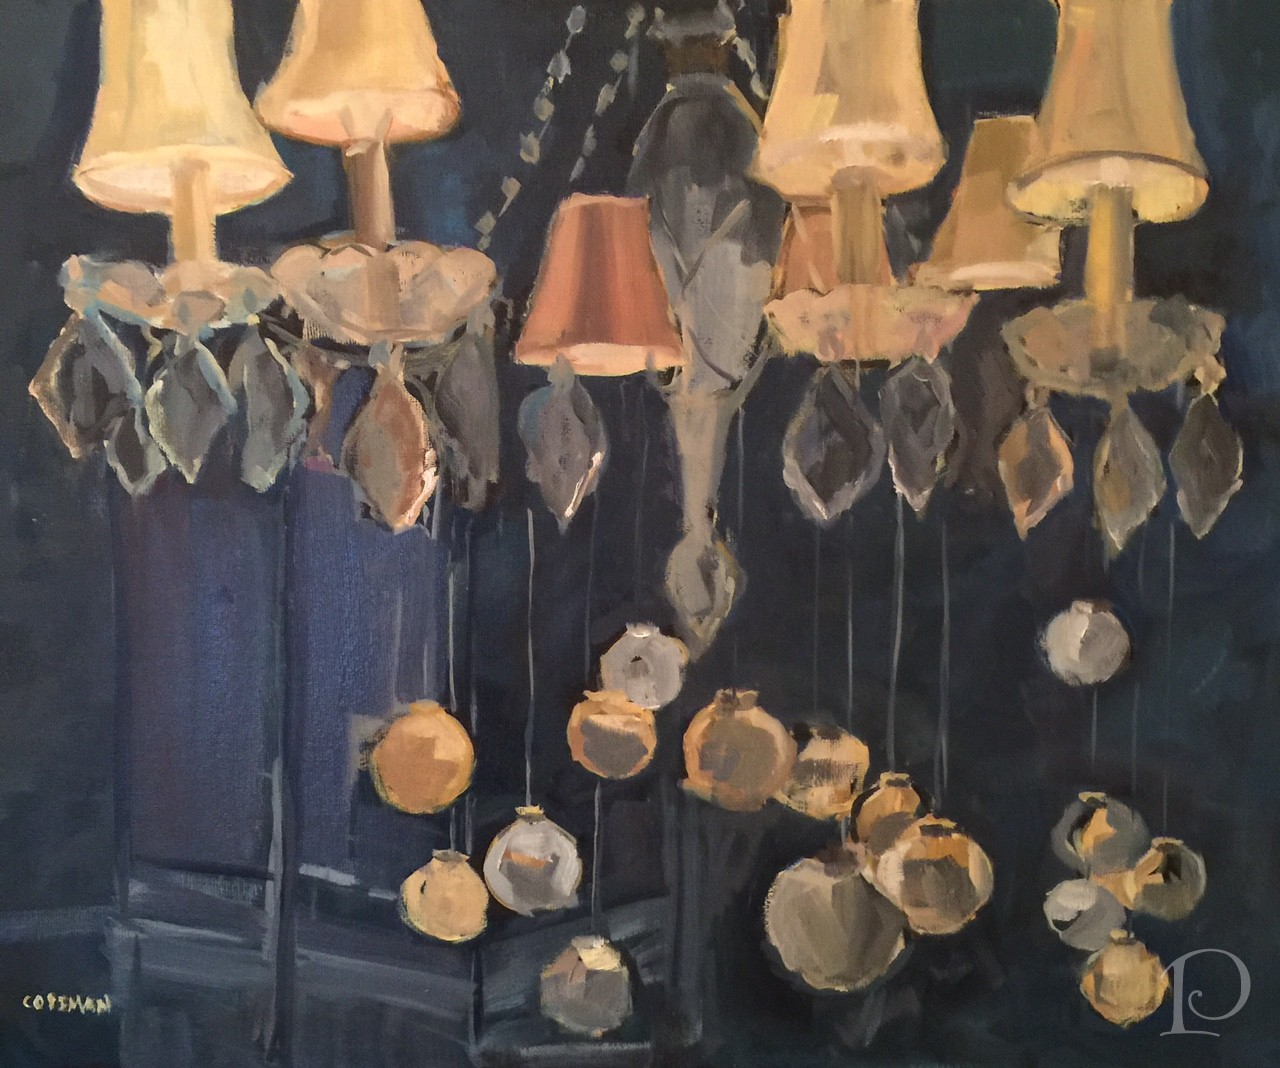 Chandlier with Christmas ornaments painting by Pamela Copeman